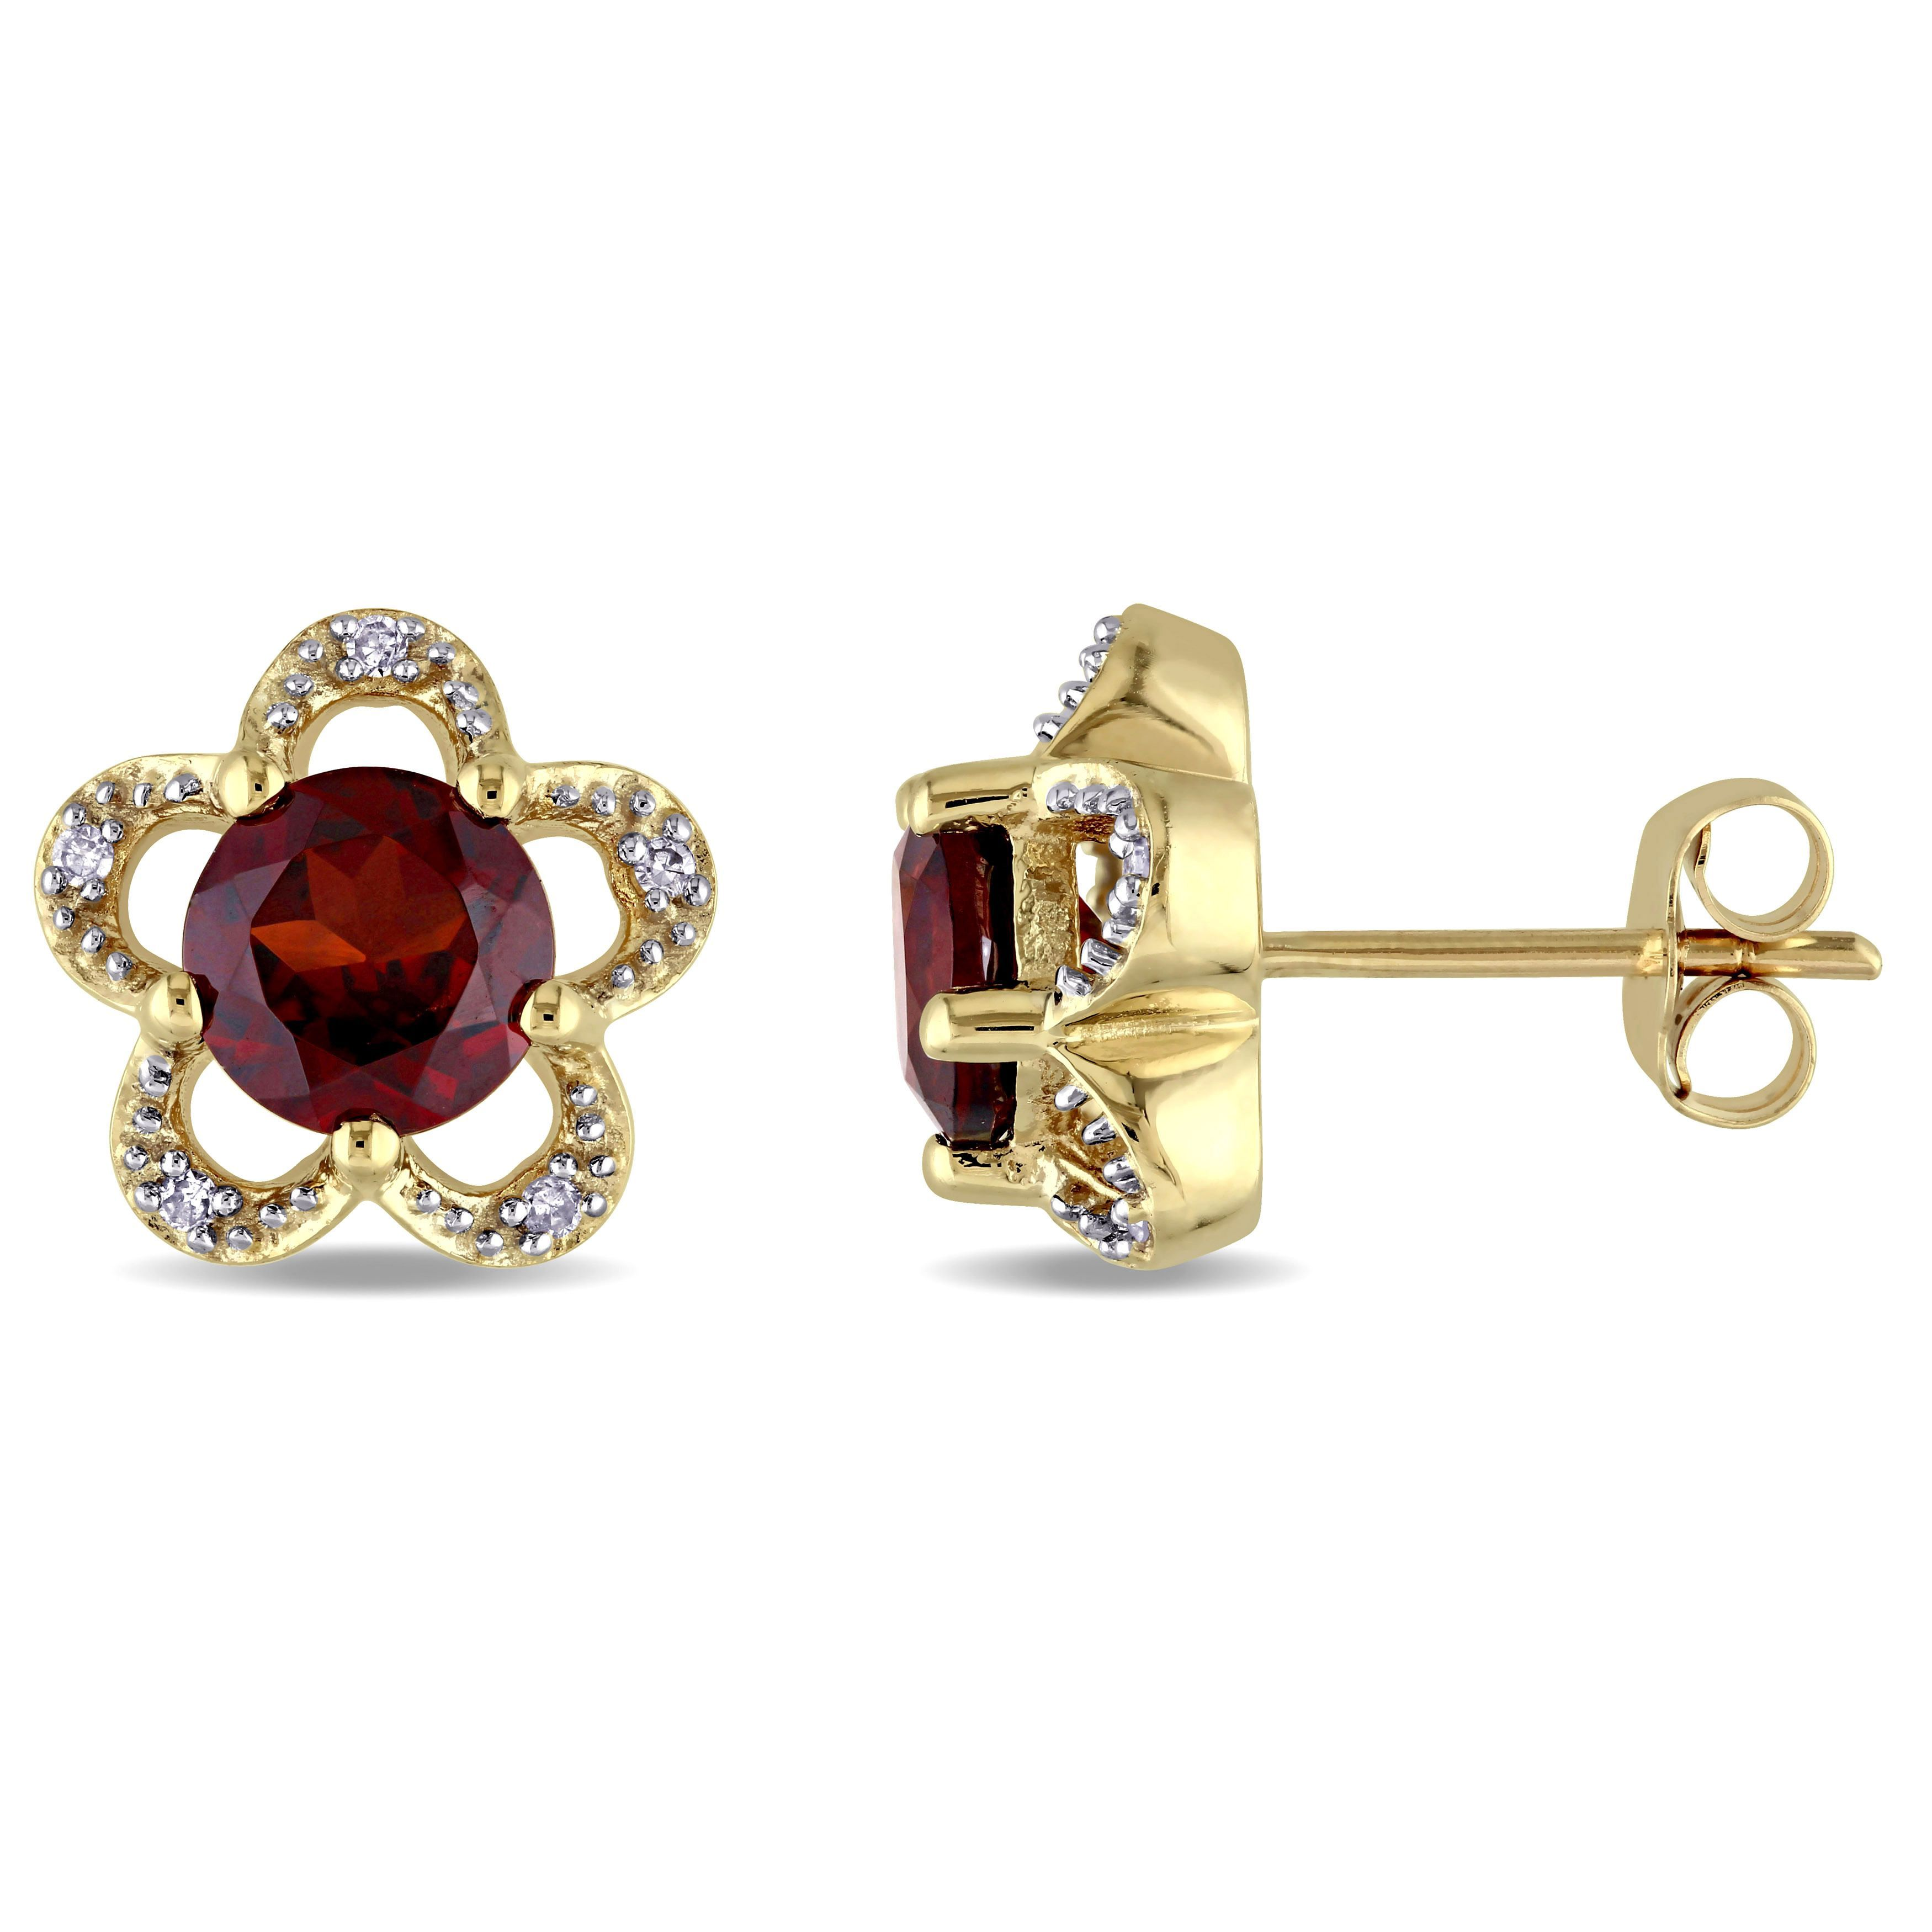 Laura Ashley 10k Yellow Gold Diamond Accent and Garnet Flower Stud